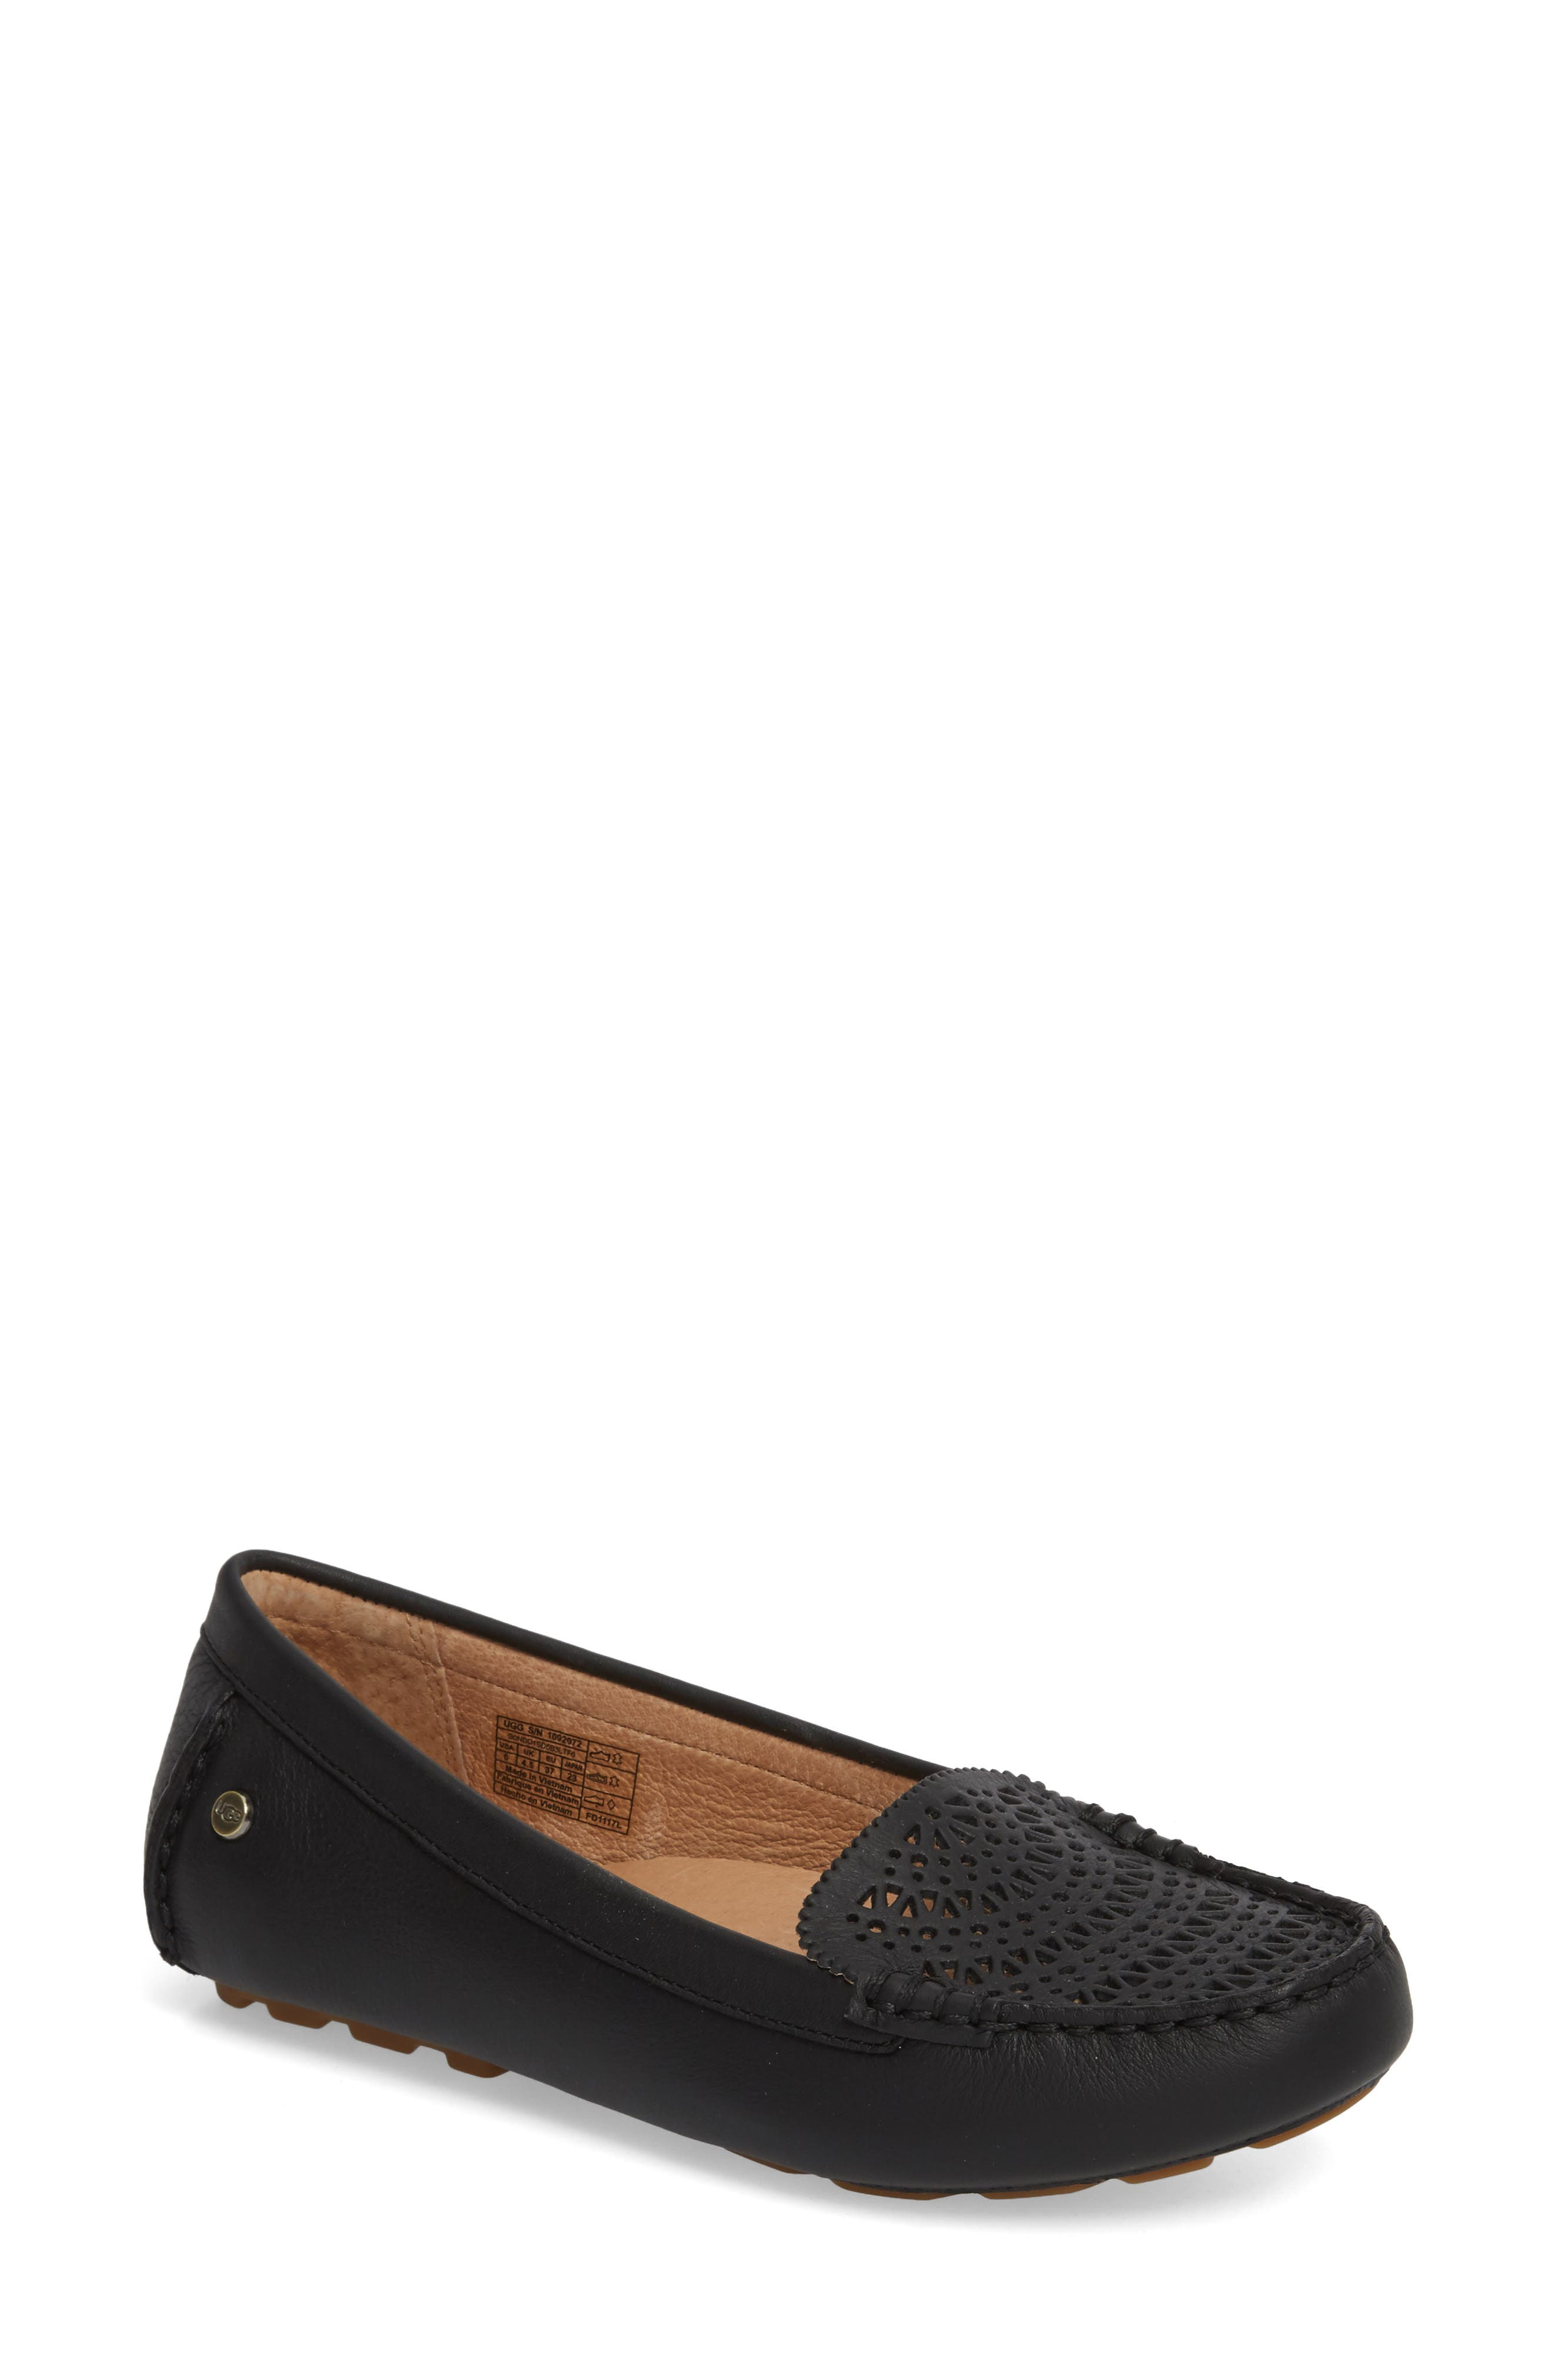 Clair Flat,                         Main,                         color, 001